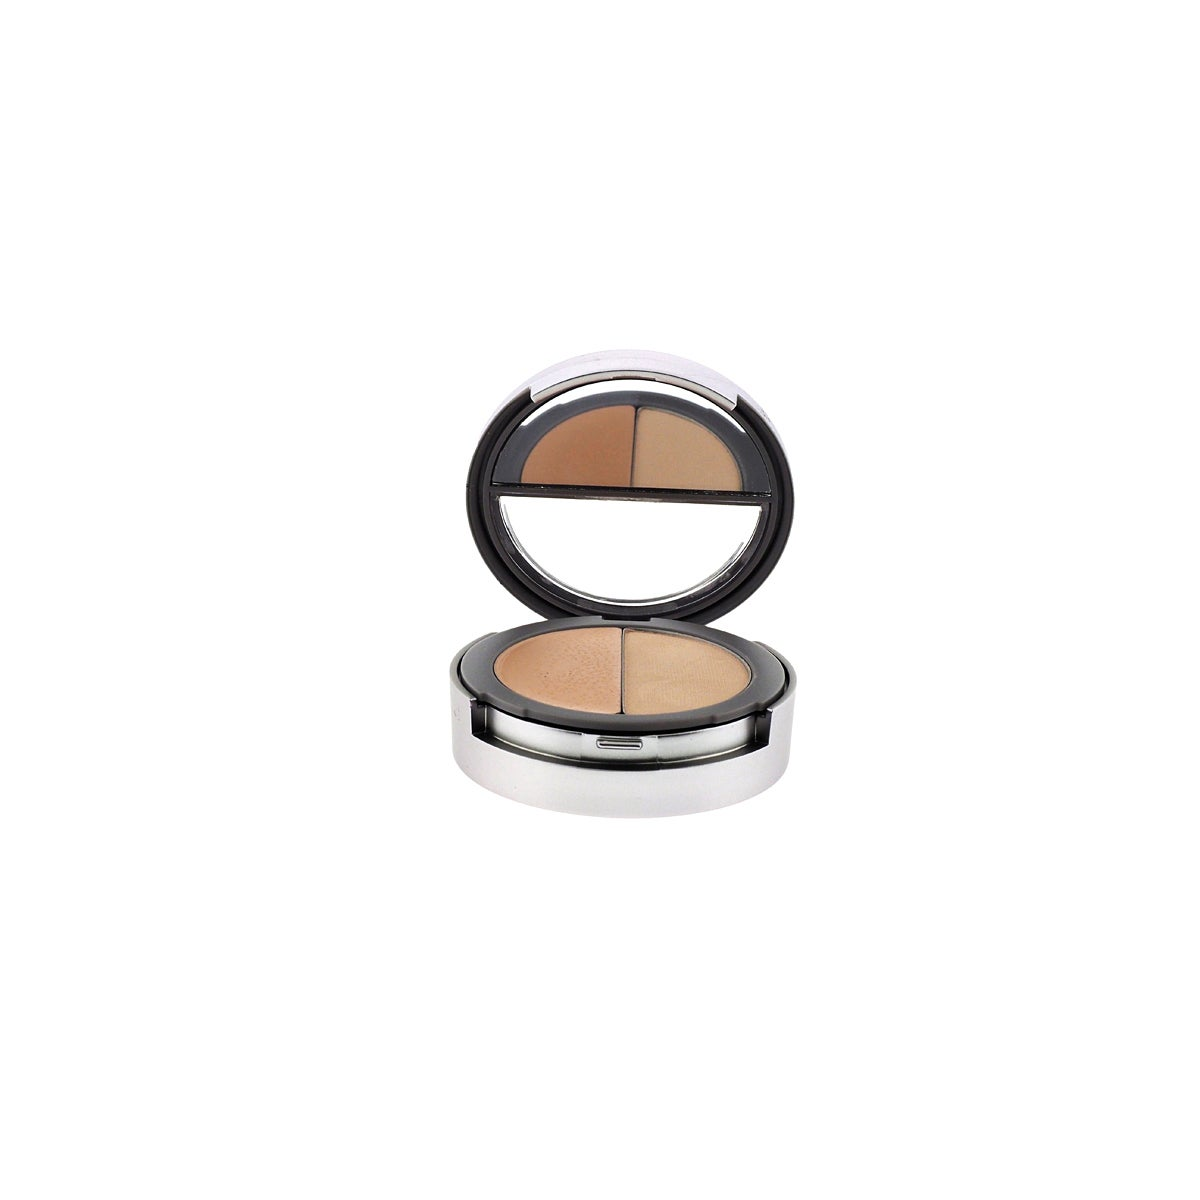 Cargo Double Agent Concealing Balm Kit 1C Fair, Nude